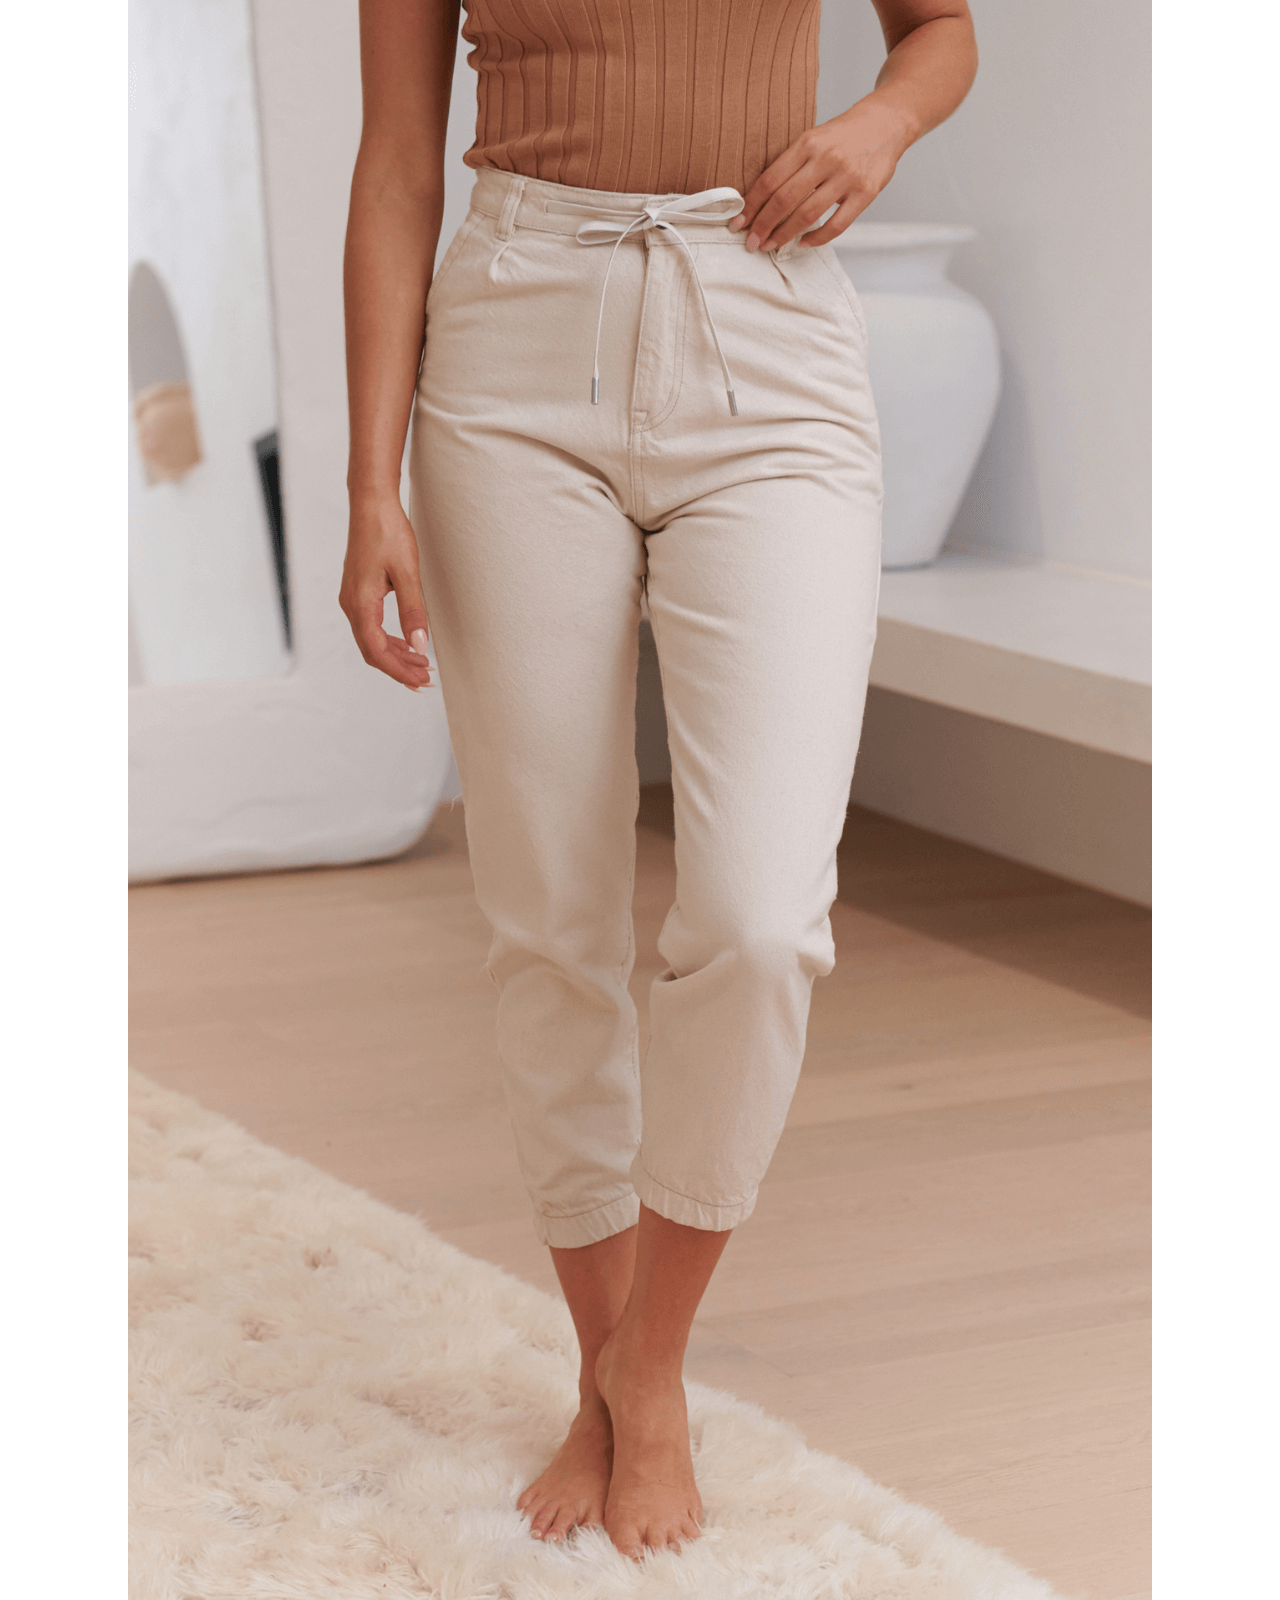 JAASE Lennox Denim Joggers - Cream